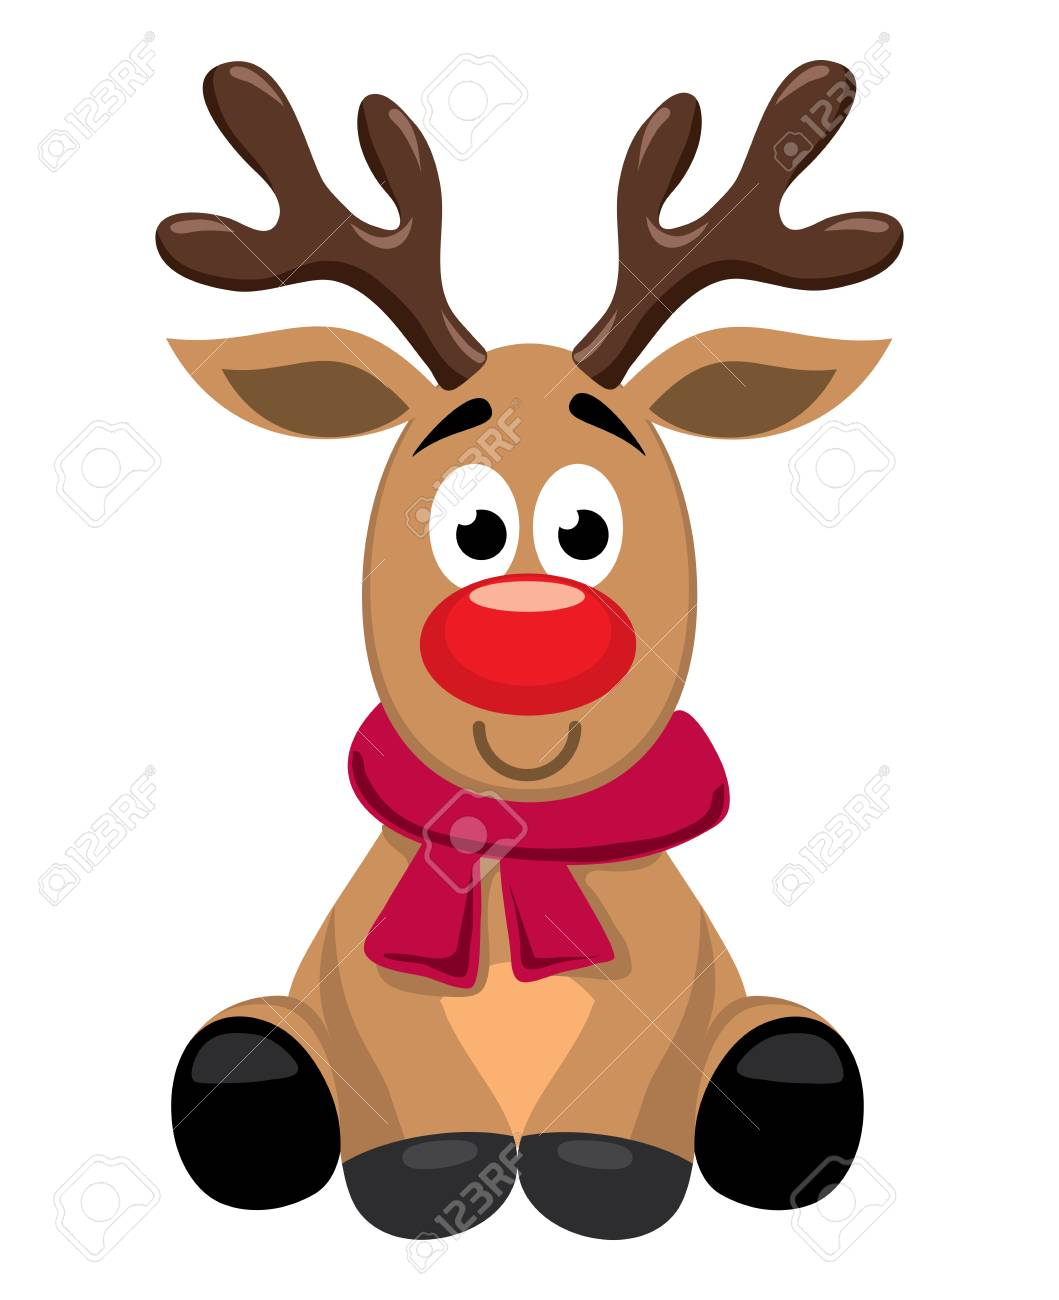 Vector Cute Cartoon Of Red Nosed Reindeer Toy Rudolph Funny Royalty Free Cliparts Vectors And Stock Illustration Image 127708764,Baby Drawer Organizer Ikea